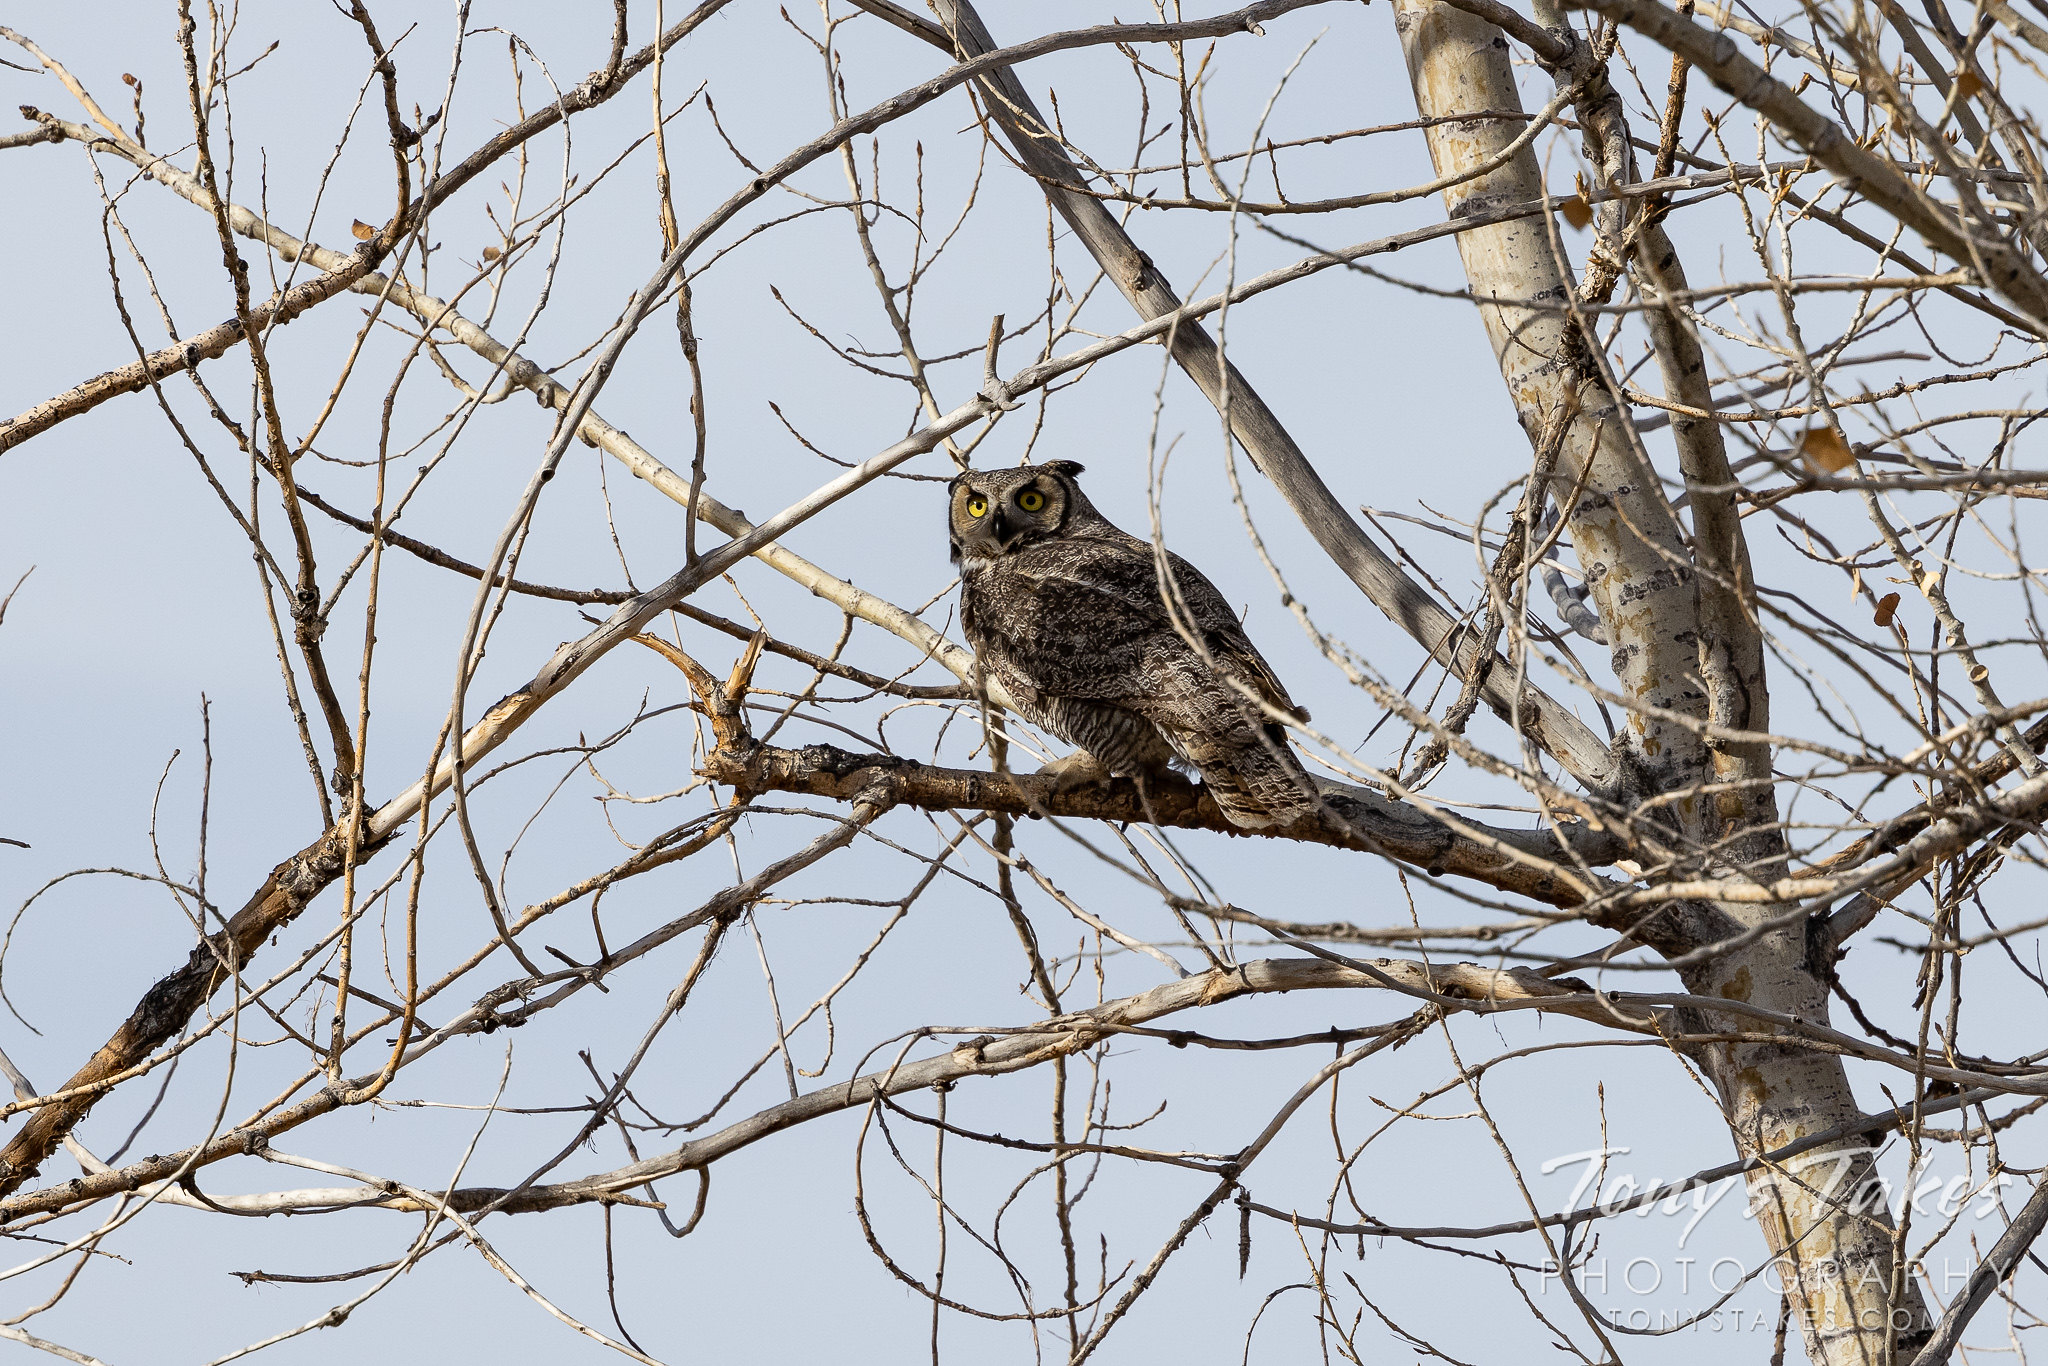 A great horned owl debates where to hide after a dog disturbed its slumber. (Tony's Takes)